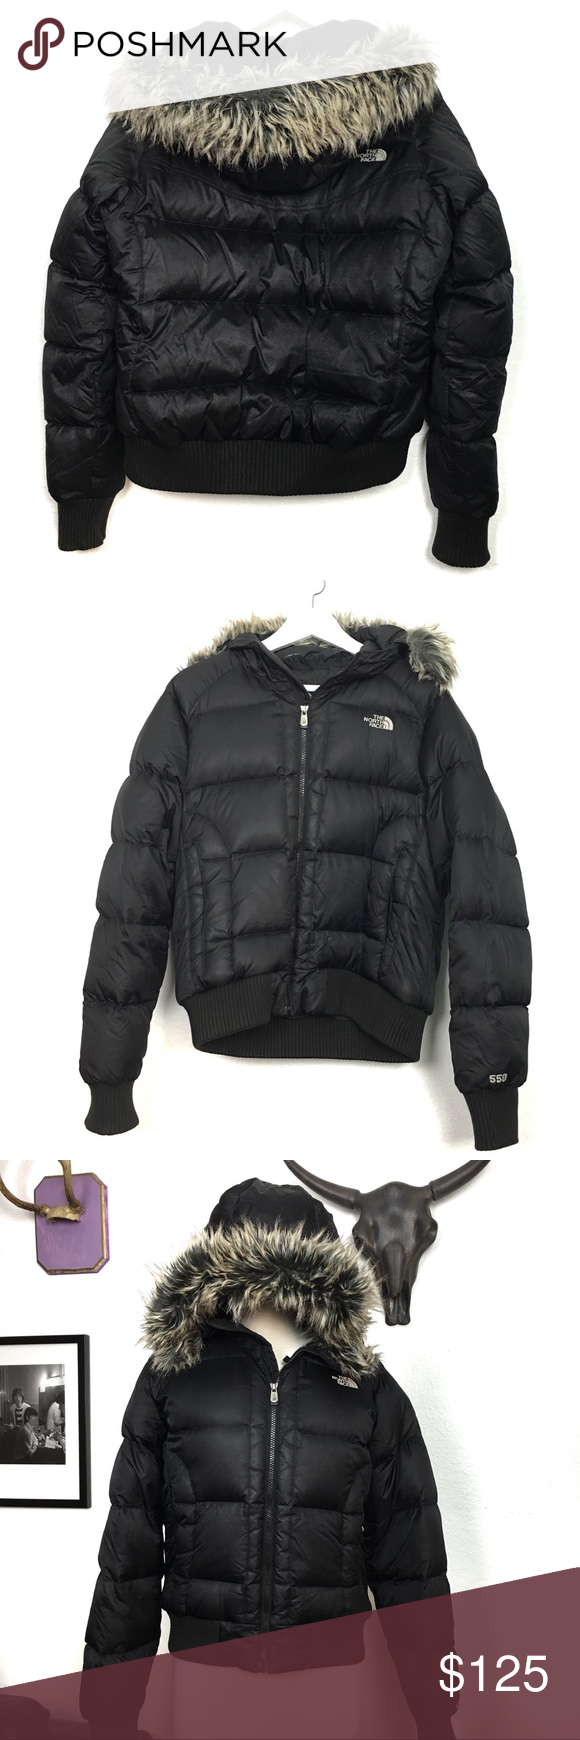 North Face Puffer Jacket Goose Down Faux Fur Hood North